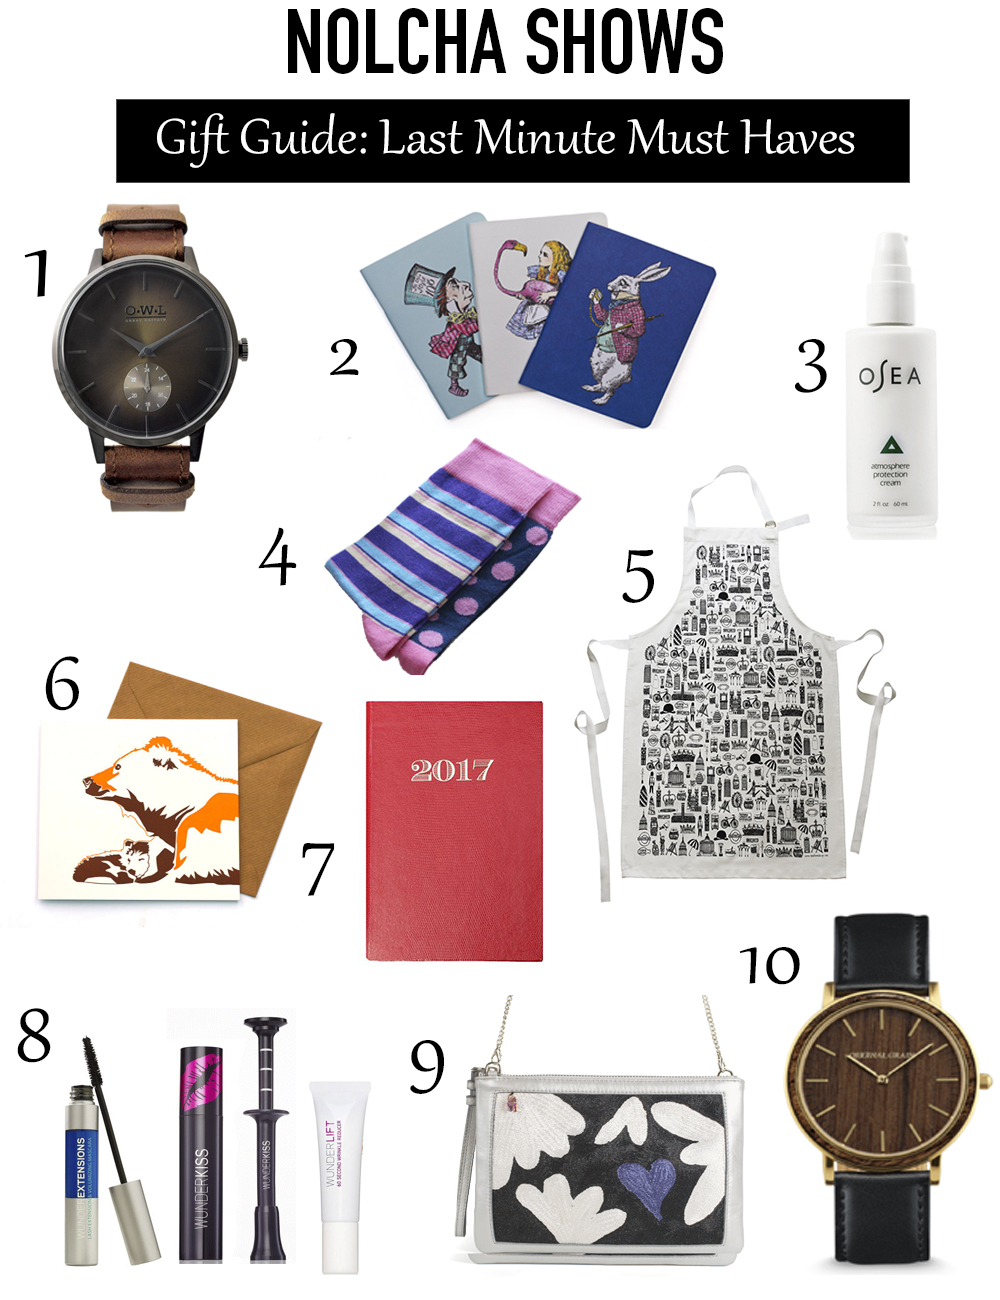 mmh-gift-guide-last-minute